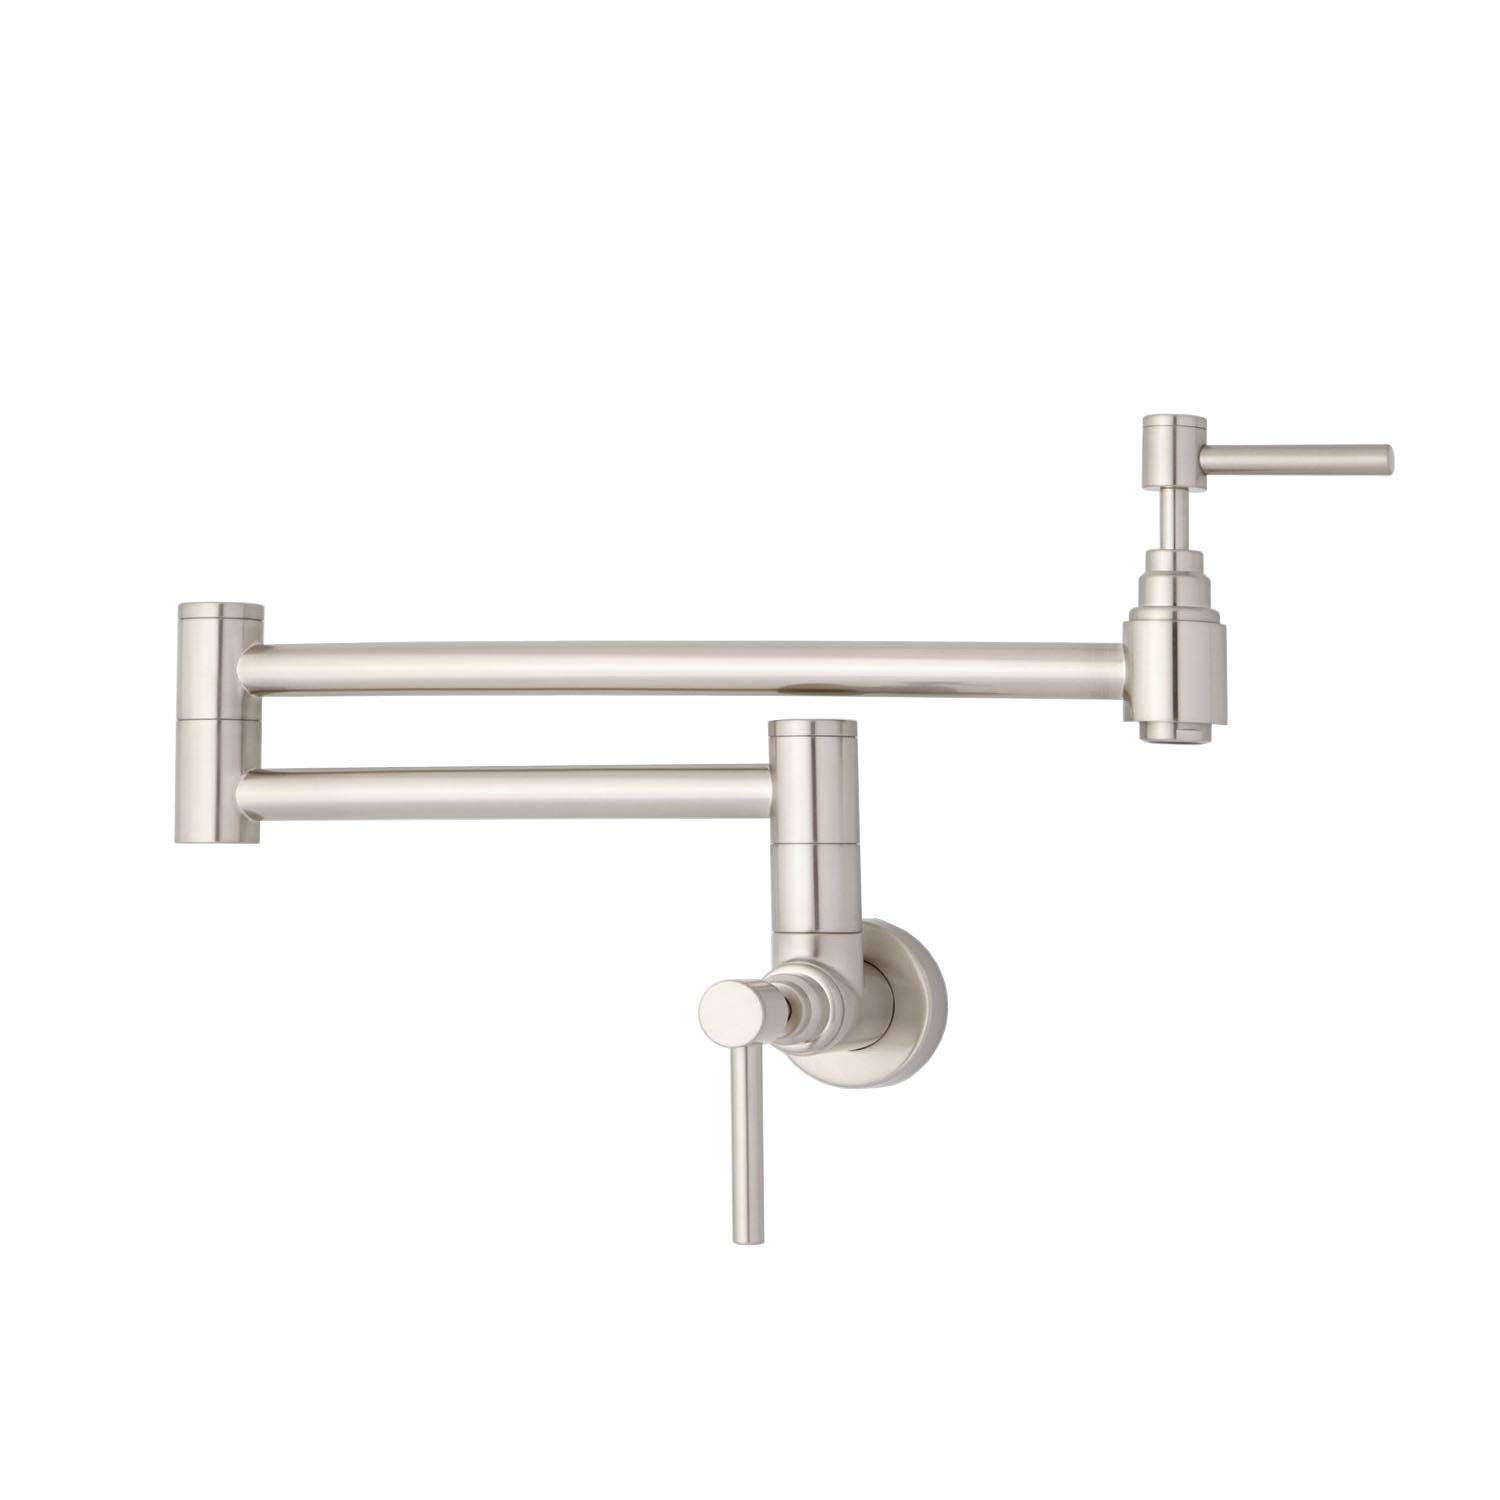 Naiture Retractable Wall-Mount Pot Filler in Brushed Nickel Finish